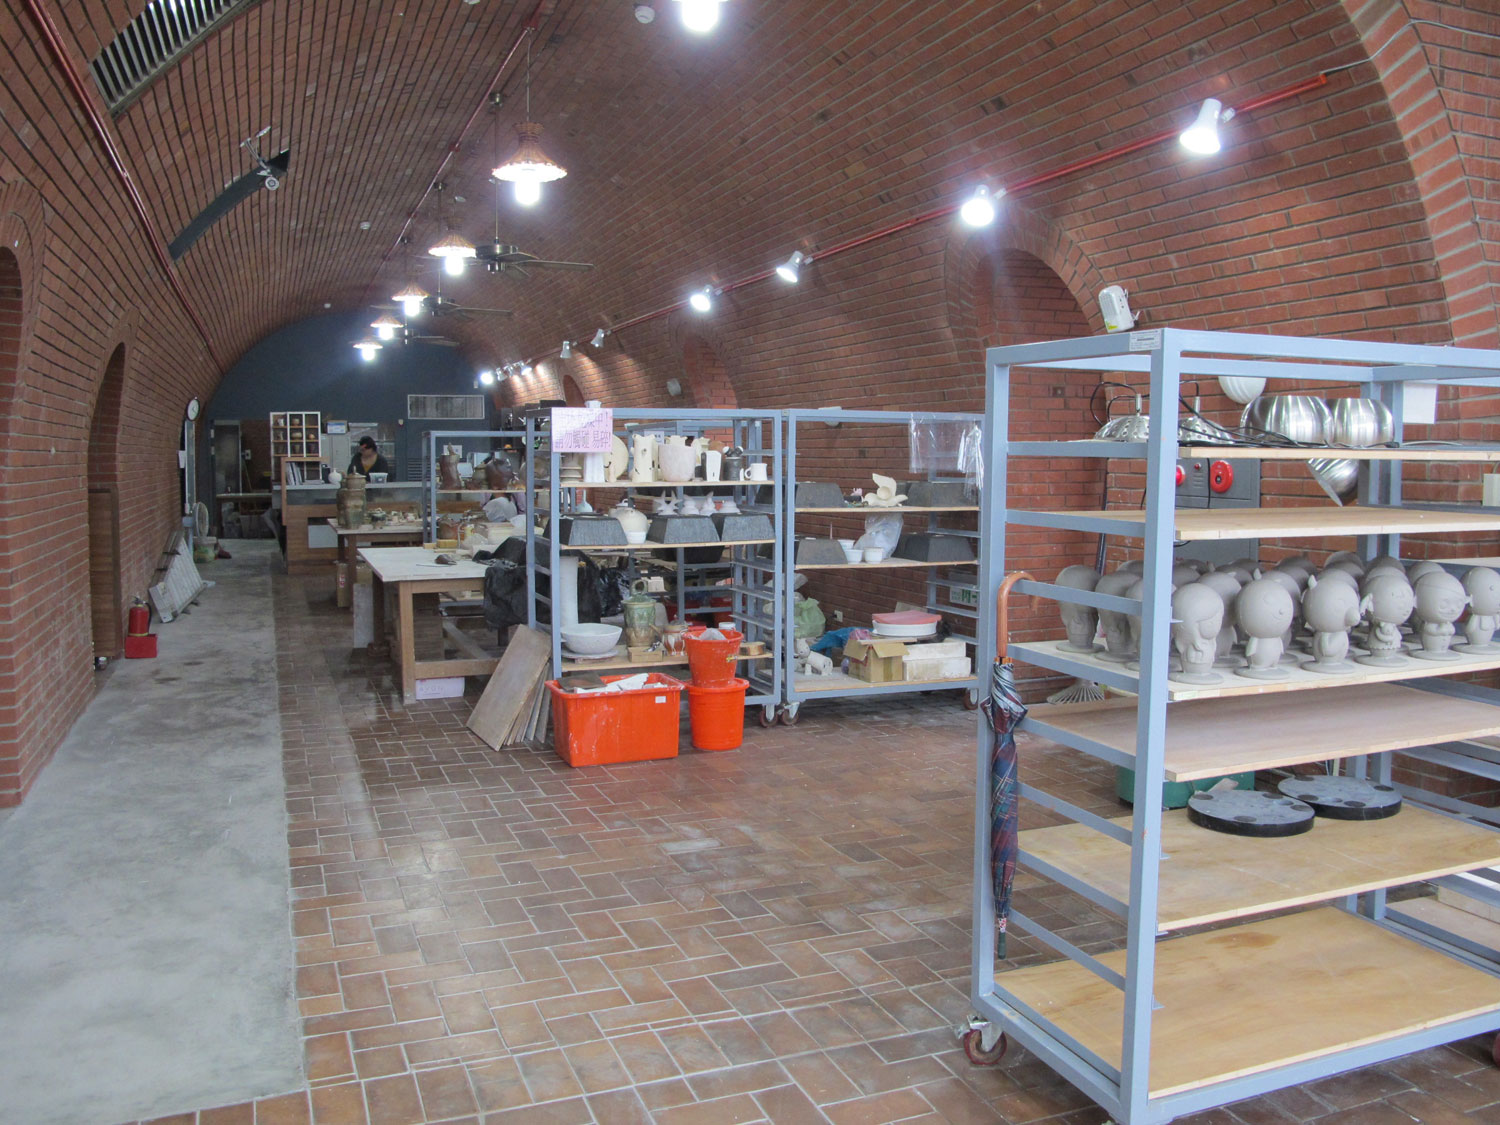 New Taipei City Yingge Ceramics Museum's Equipment Photo